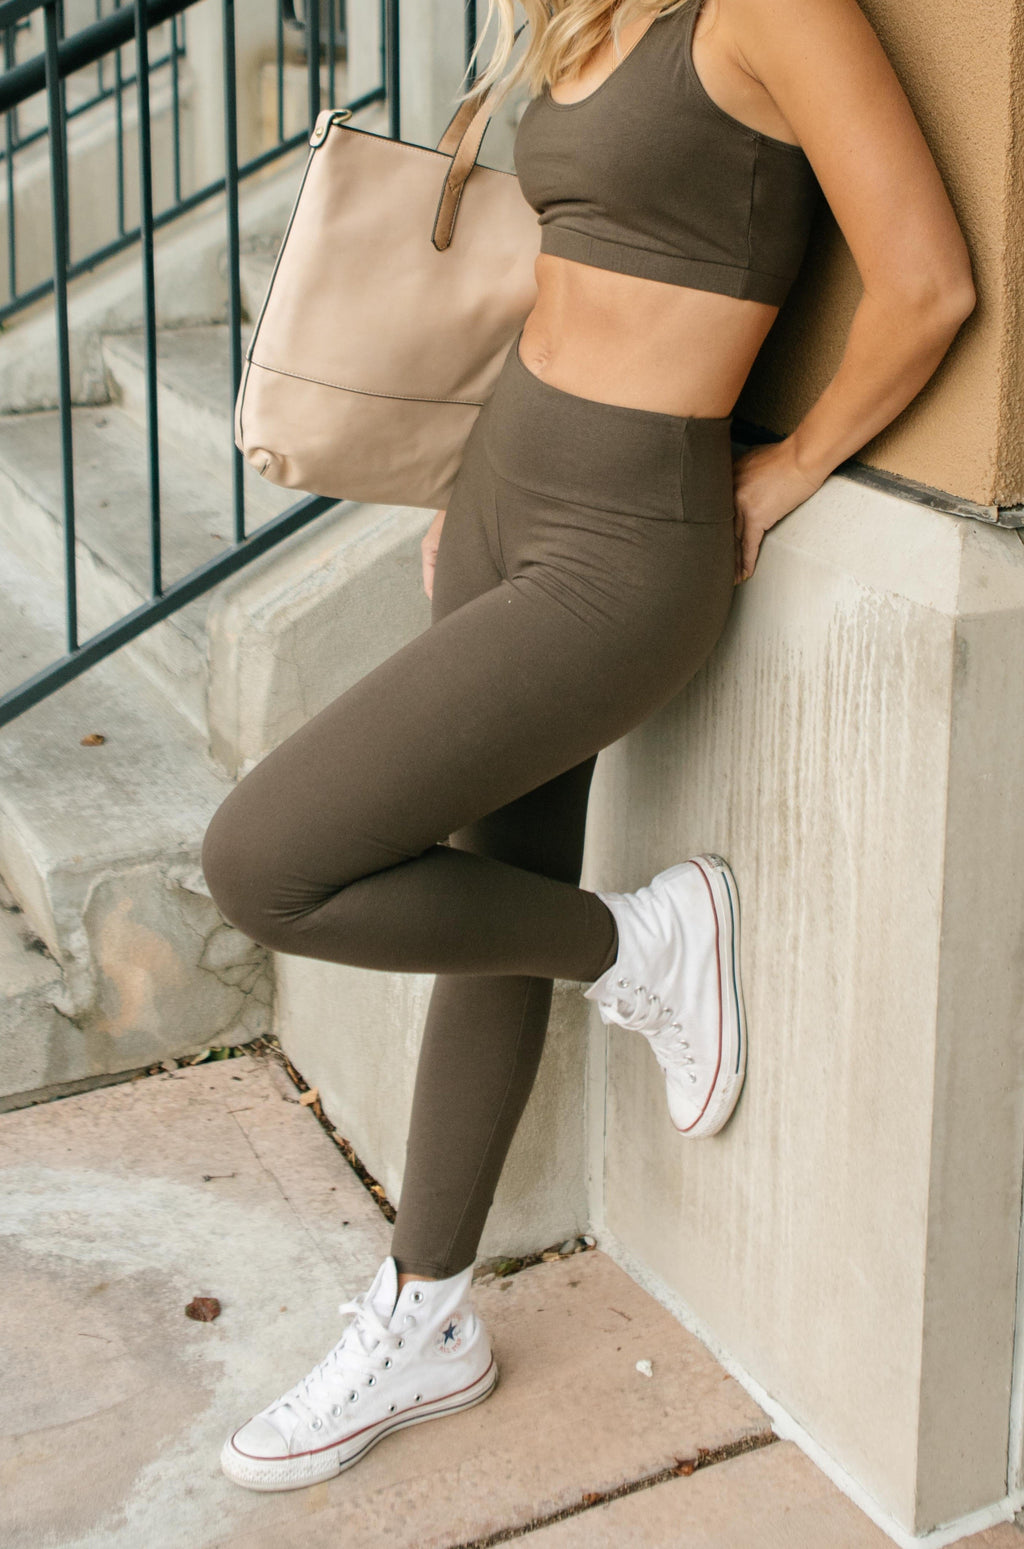 Lucy Lounging Leggings in Deep Olive-10-13-2020, 1XL, 2XL, 3XL, BFCM2020, Bottoms, Group A, Group B, Group C, Group D, Group U, Group V, Group W, Group X, Group Y, Group Z, Large, Made in the USA, Medium, Plus, Small, XL, XS-Womens Artisan USA American Made Clothing Accessories